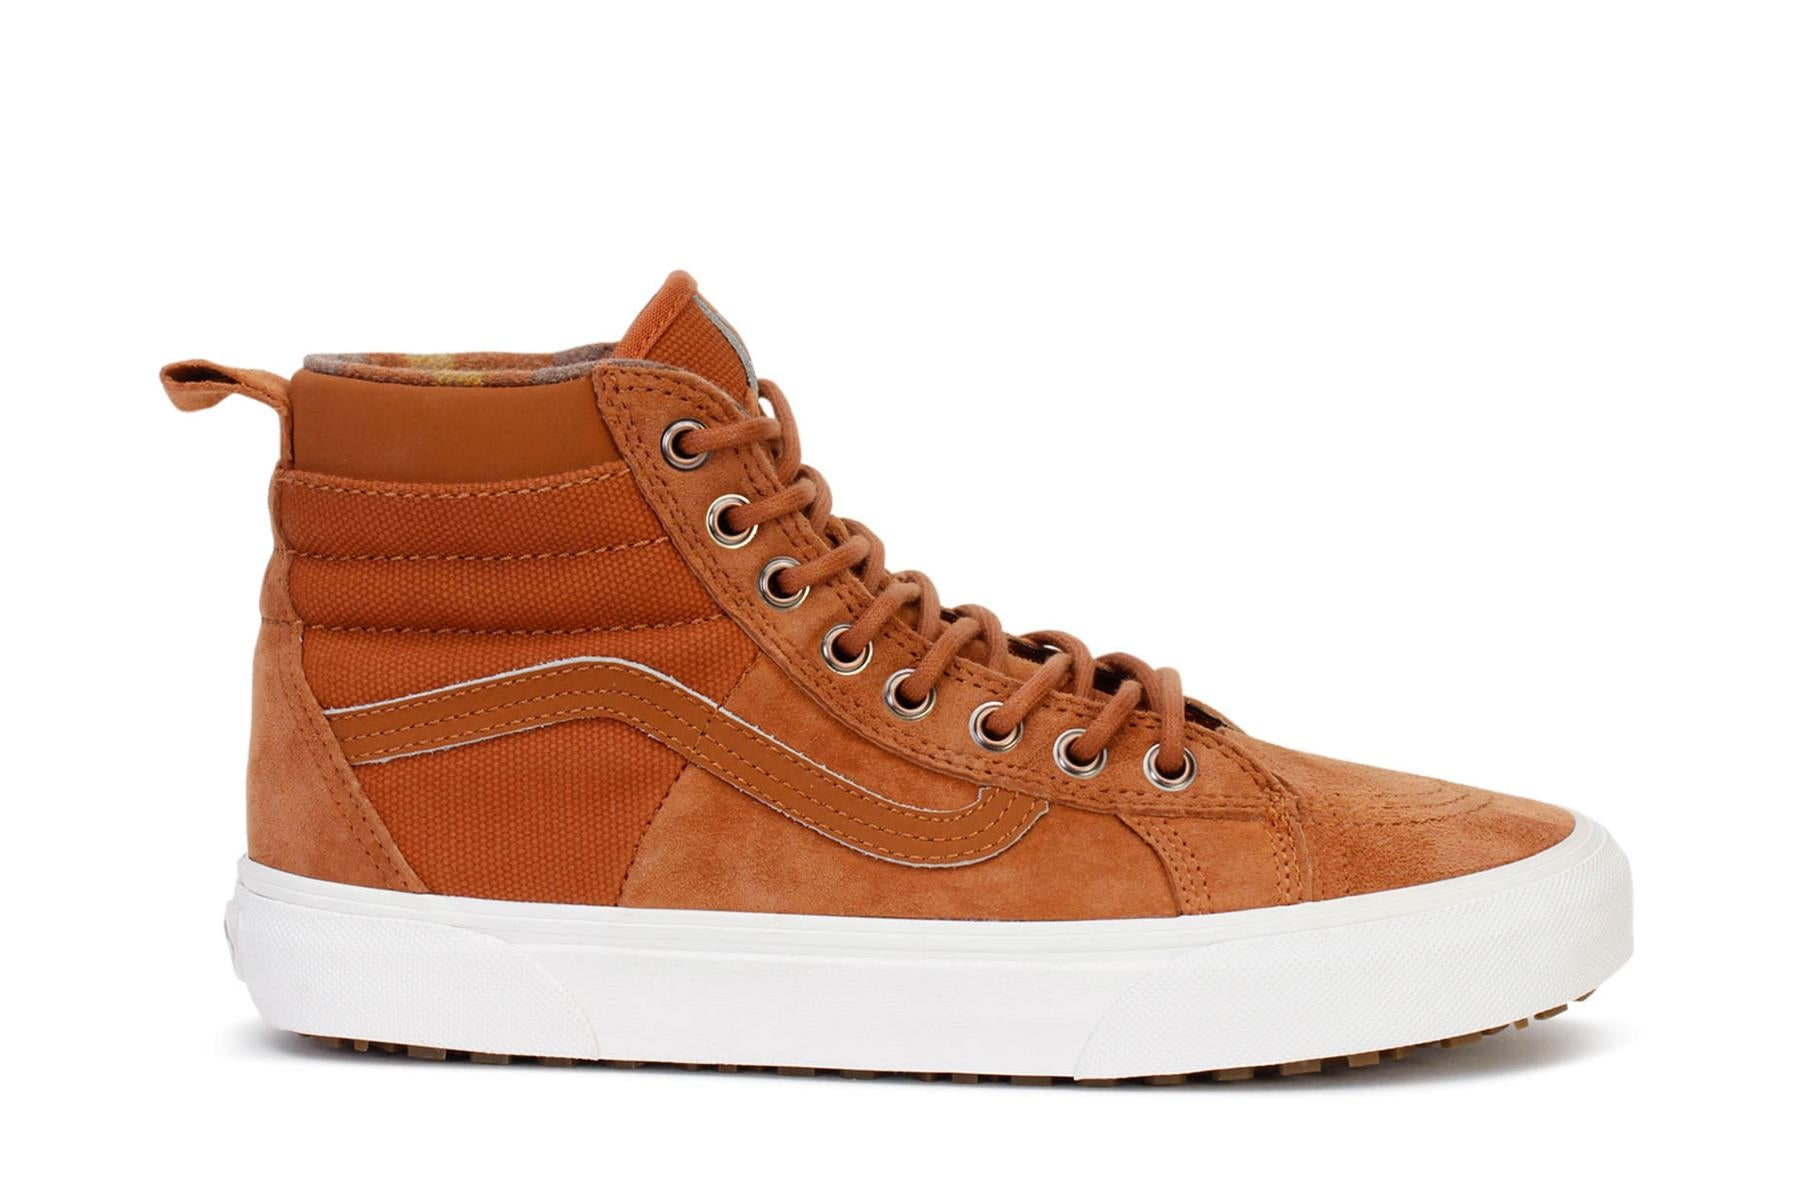 vans-mens-high-top-sneakers-sk8-hi-46-mte-dx-glazed-ginger-flannel-main